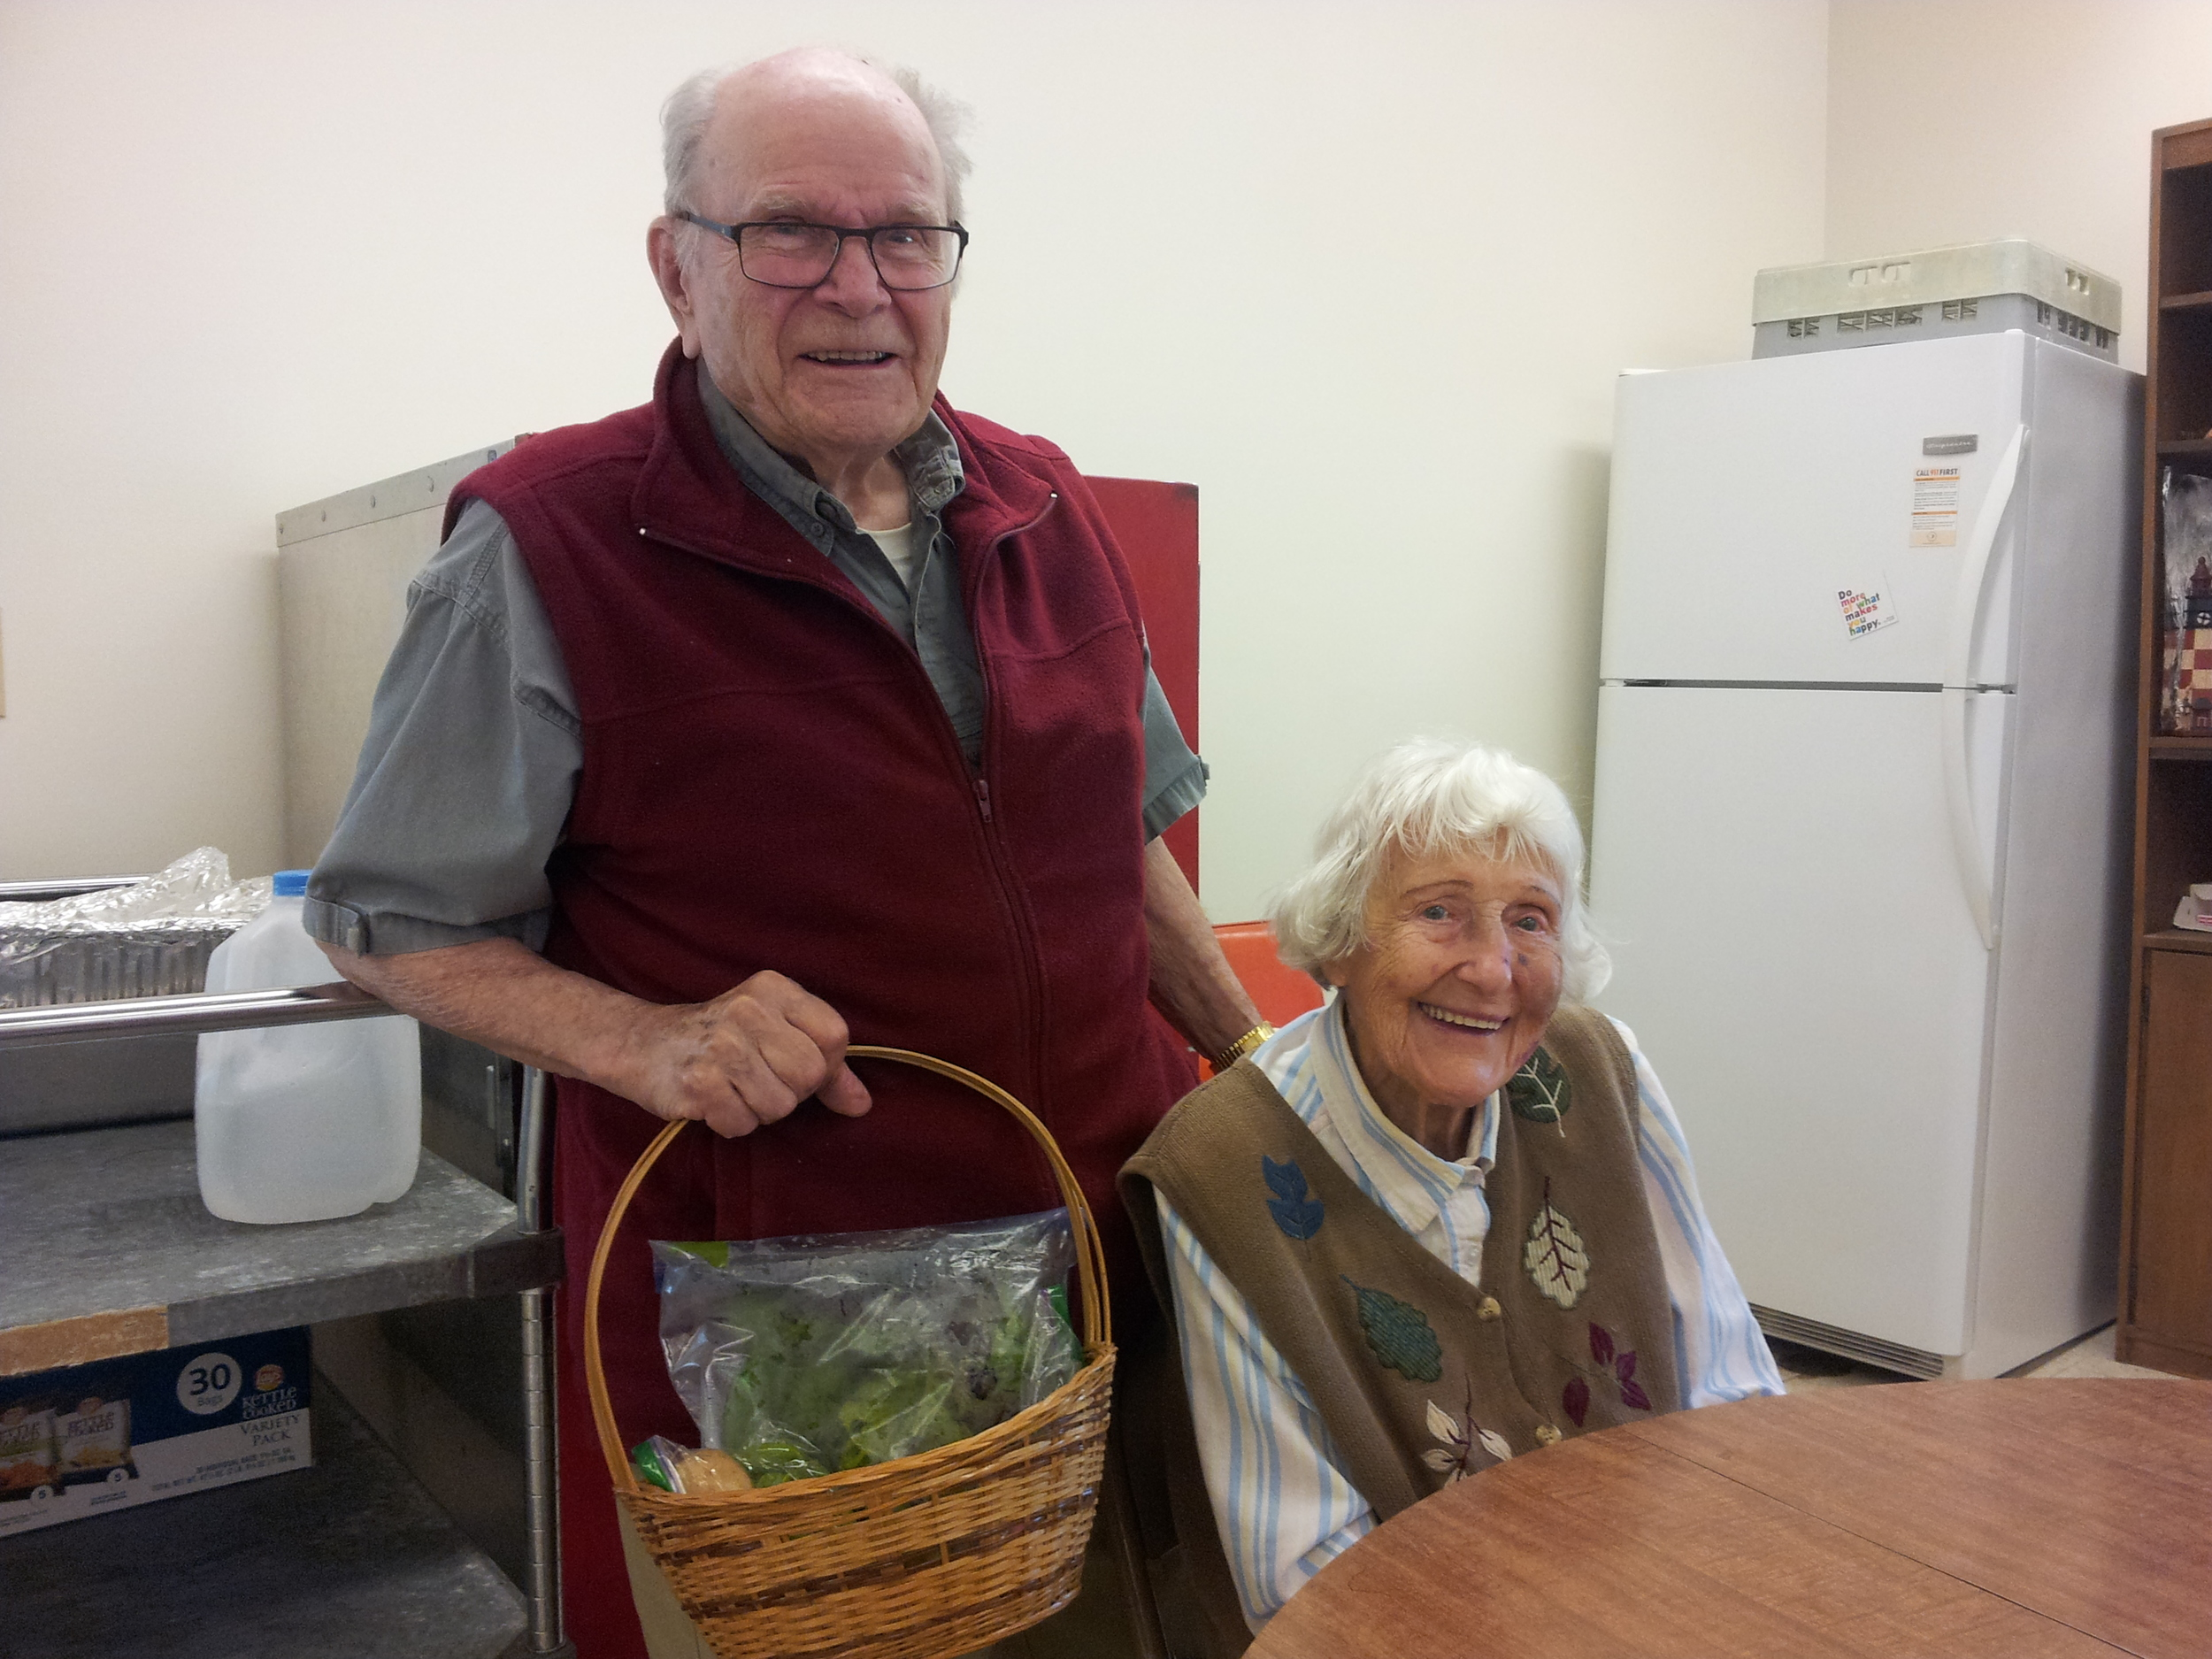 We asked Leo and Ms Helen to give our produce a try and they were very happy to do so!